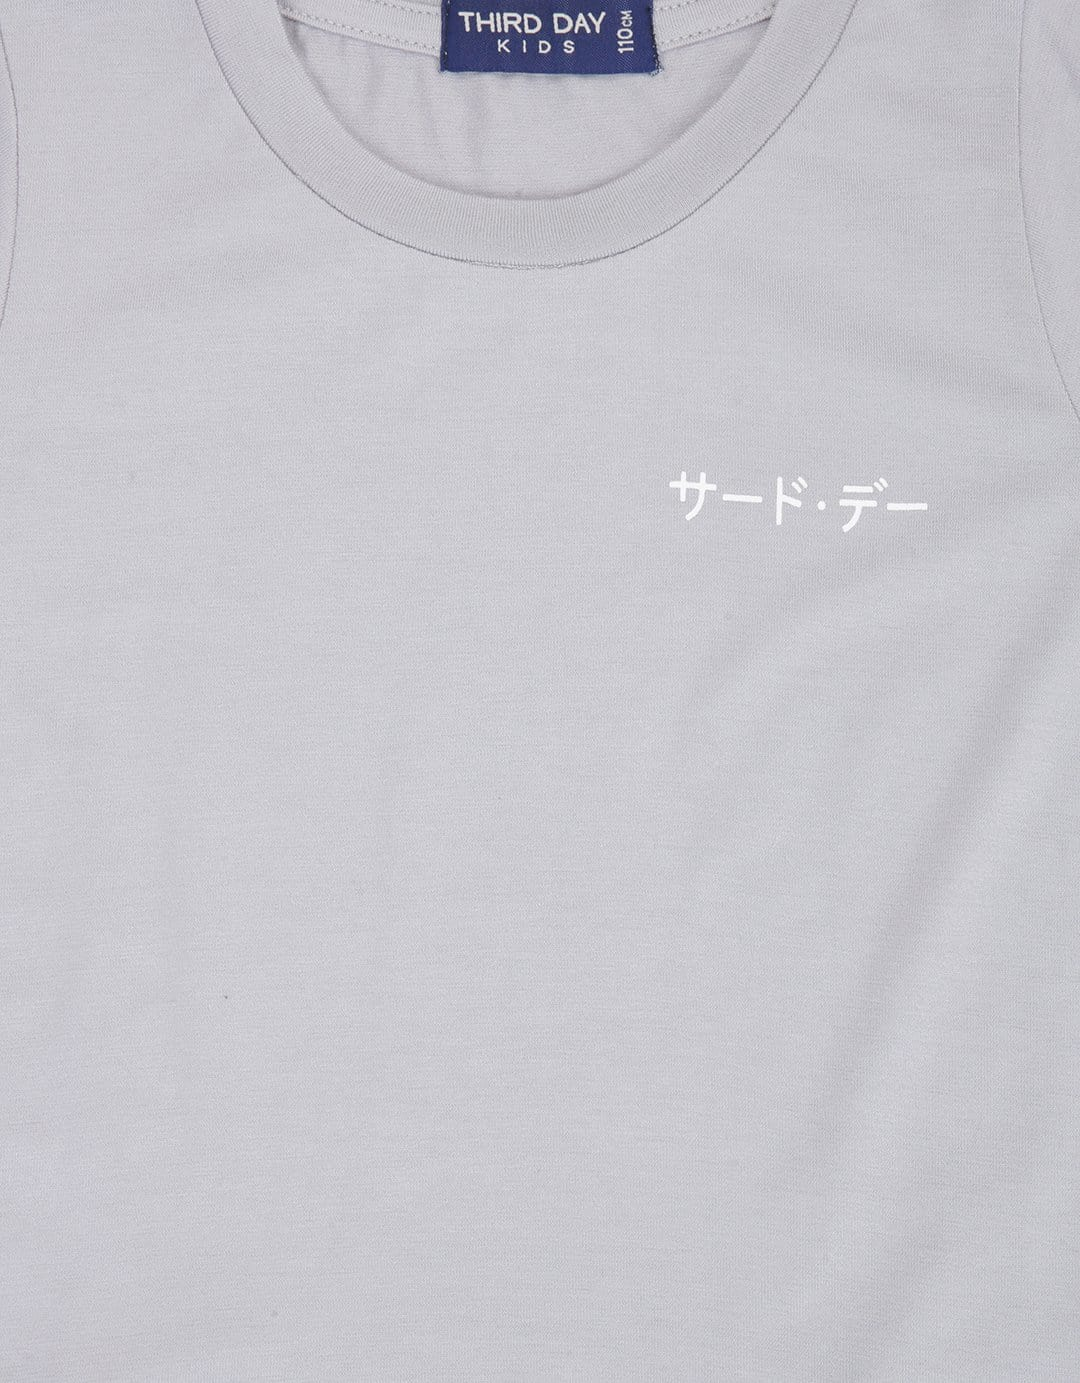 DT140 thirdday kaos balita small dakir katakana grey